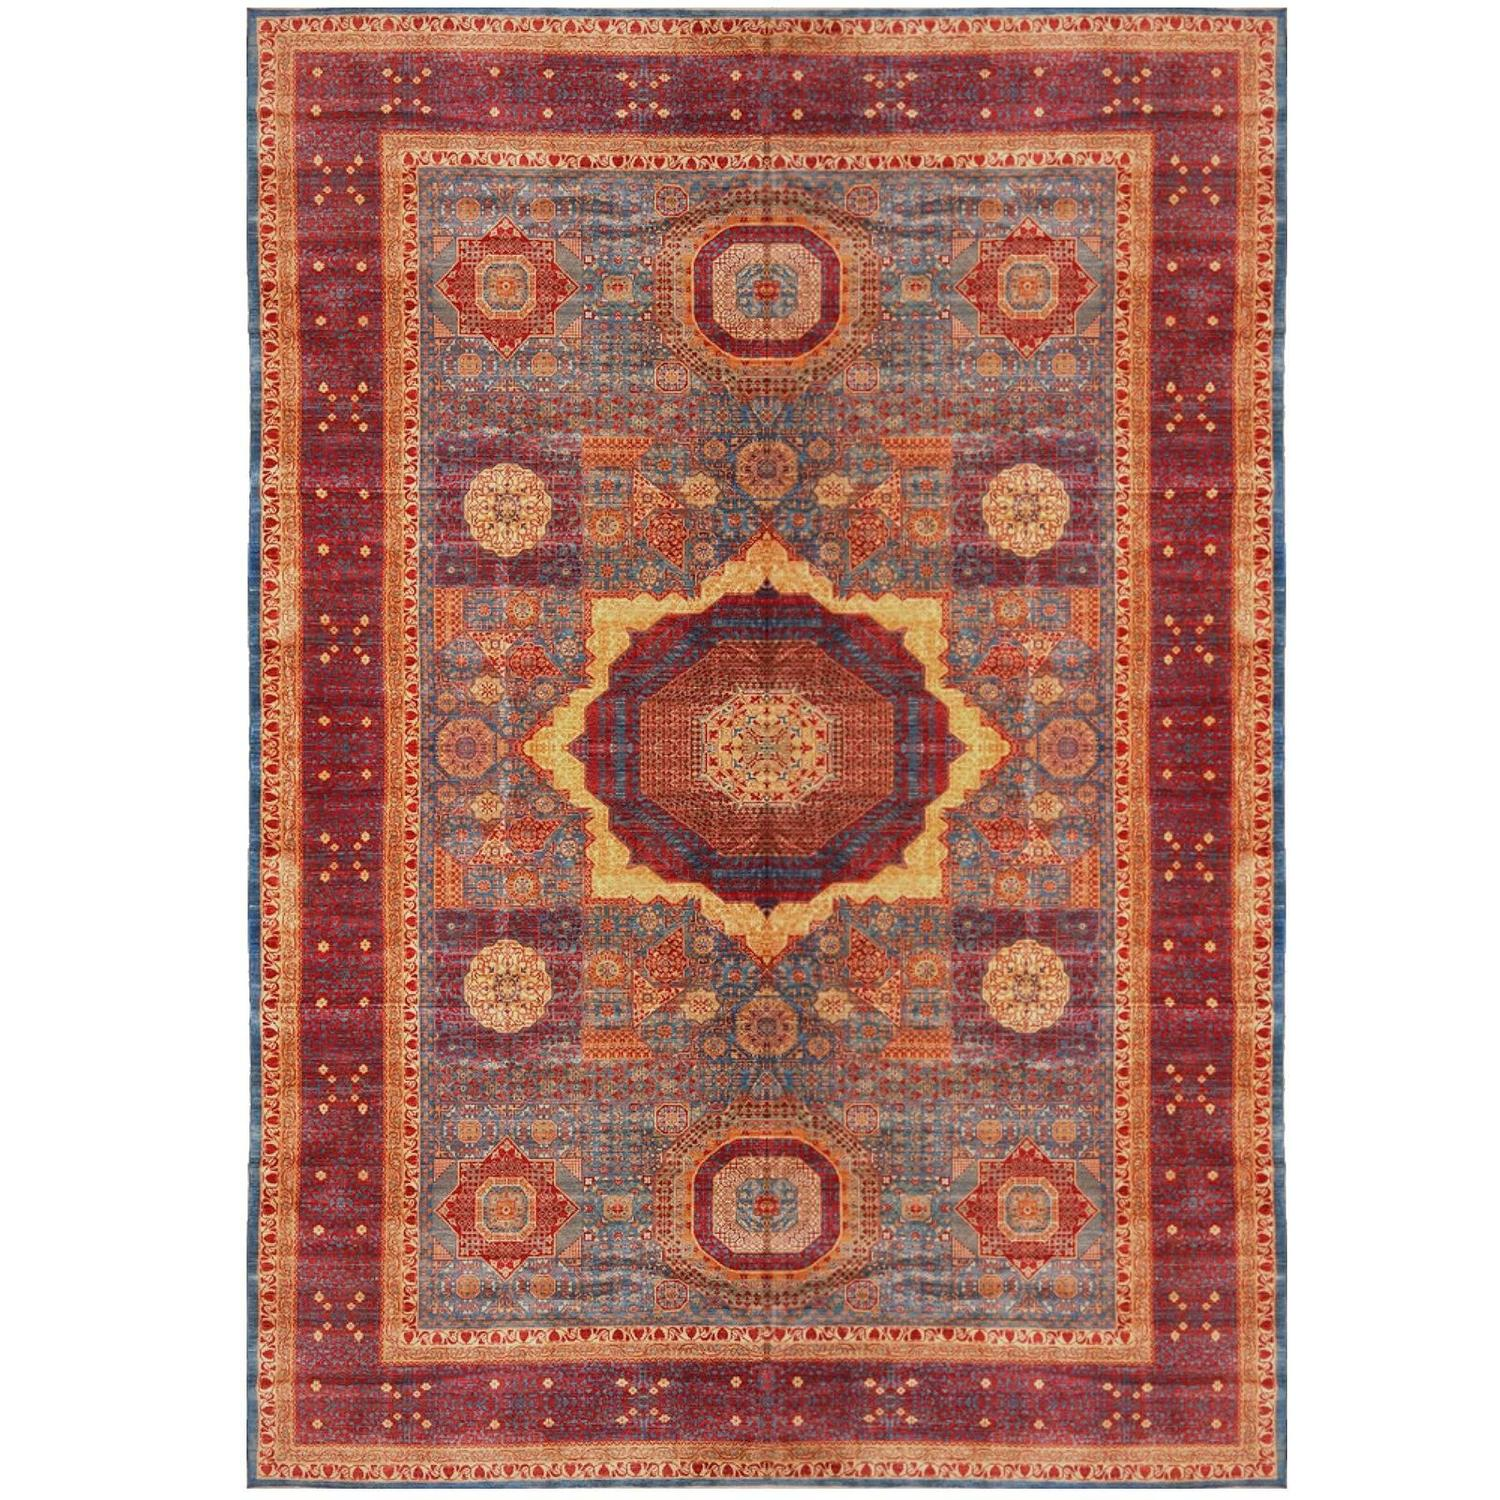 Very Large Mamluk Hand Knotted Rug For Sale At 1stdibs